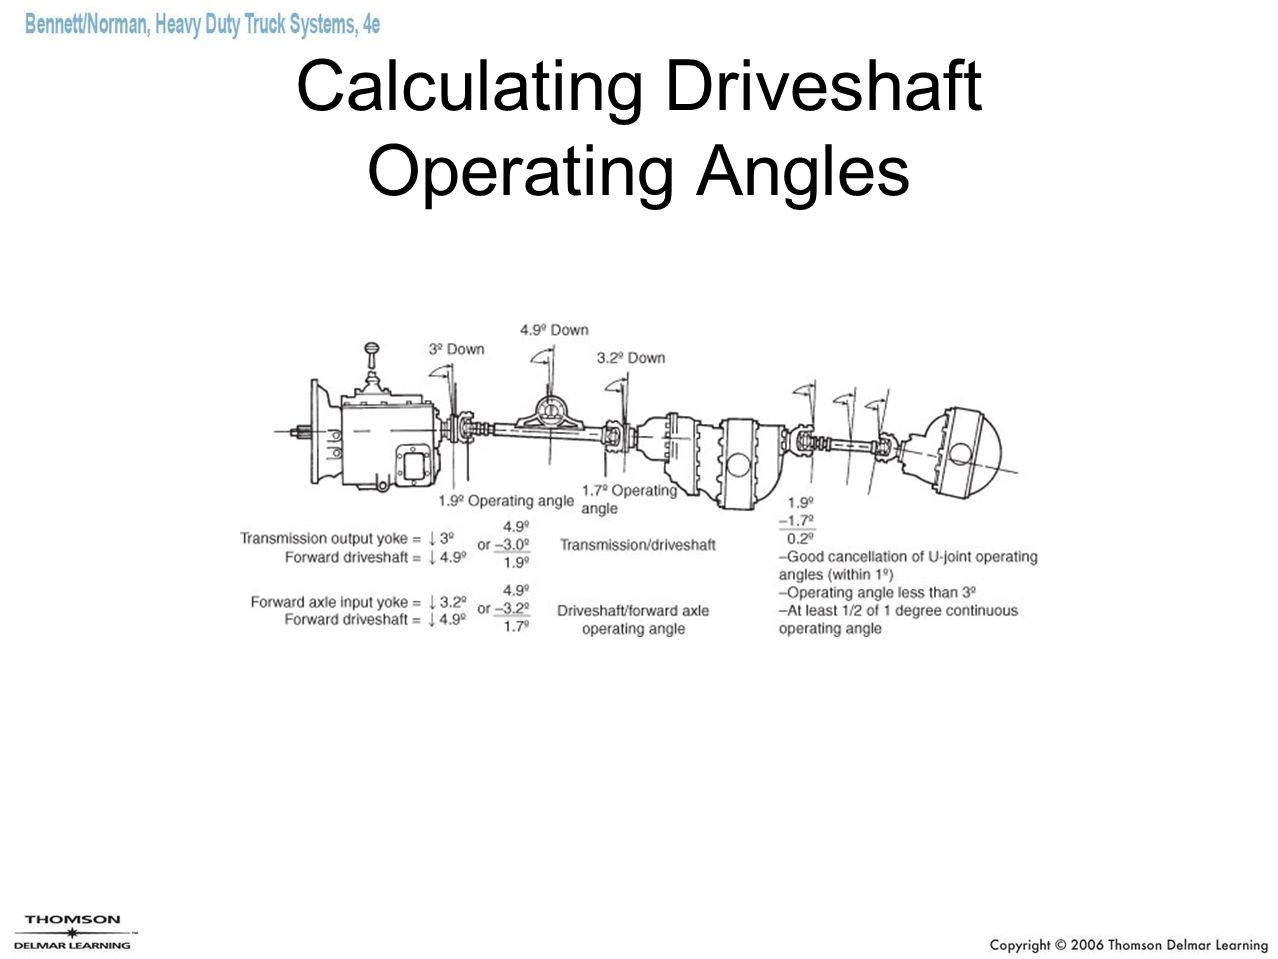 Calculating Driveshaft Operating Angles